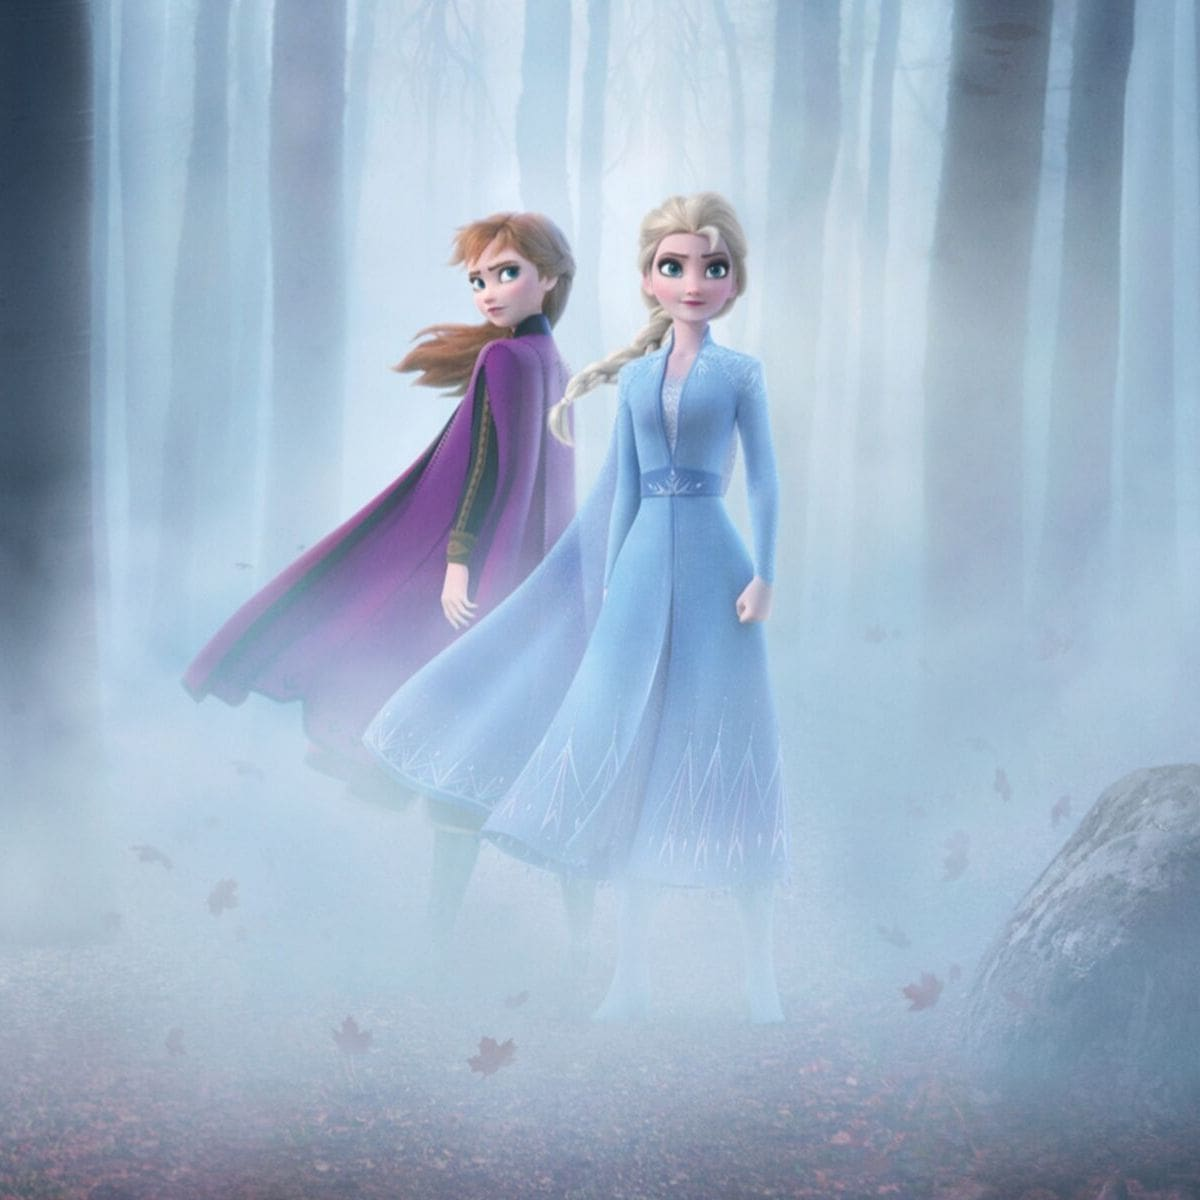 Anna and Elsa in the forest